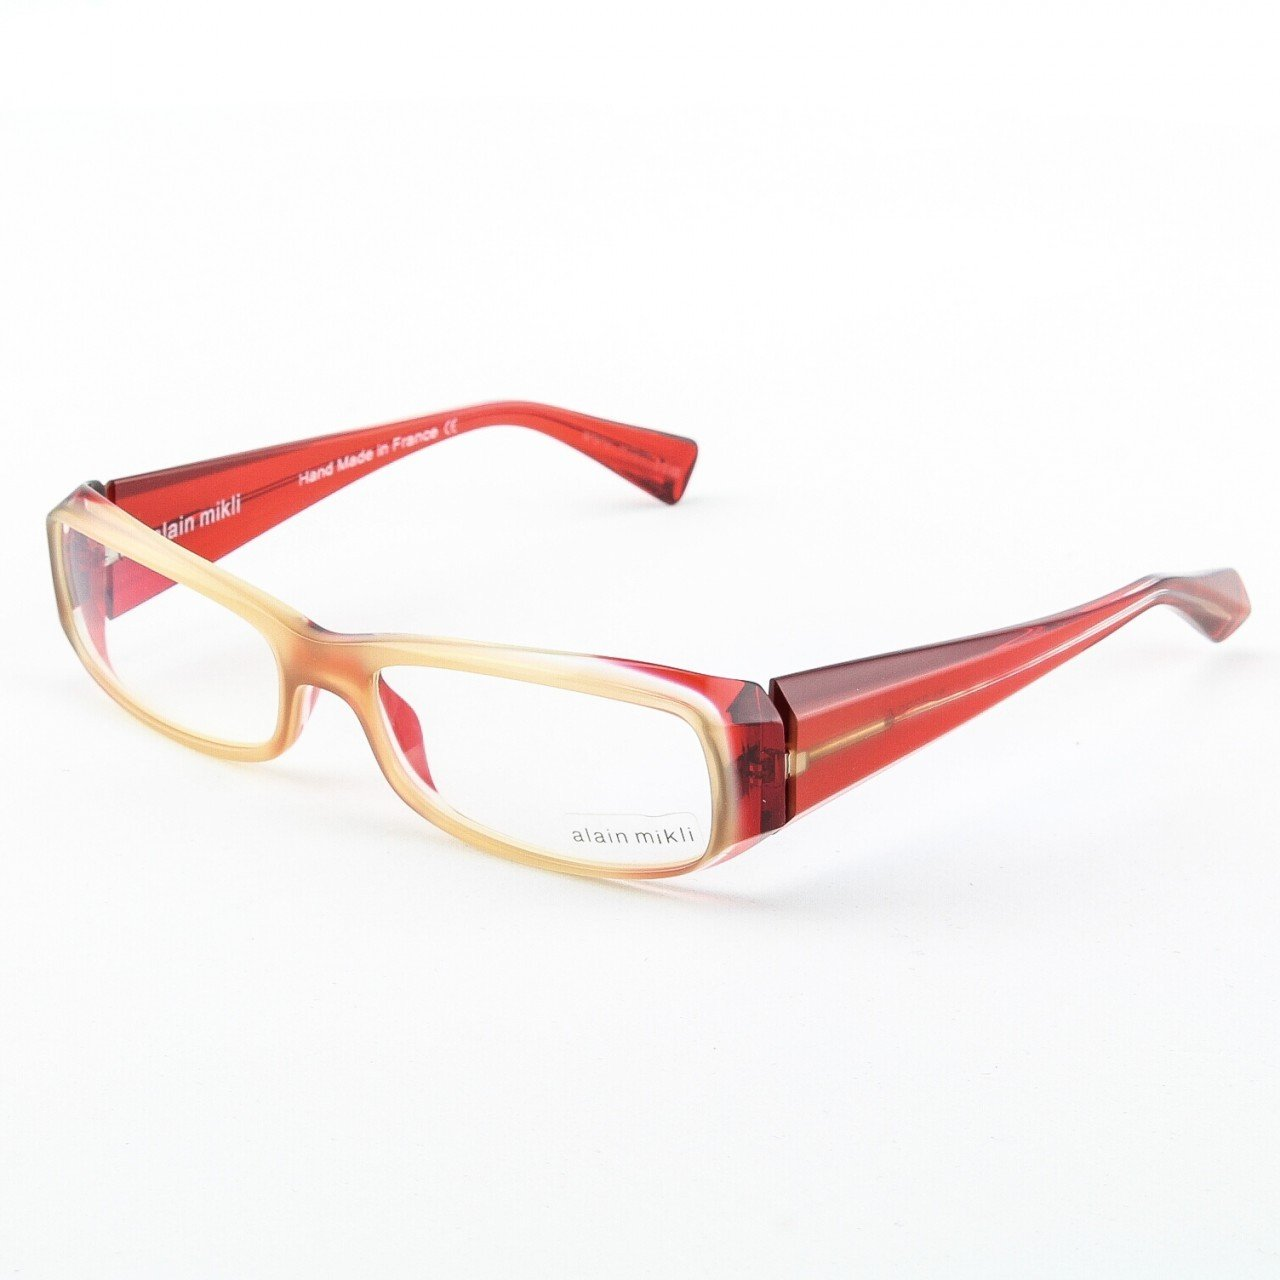 Alain Mikli Eyeglasses AL0322 63 Neutral Translucent Frame Red Translucent Accents